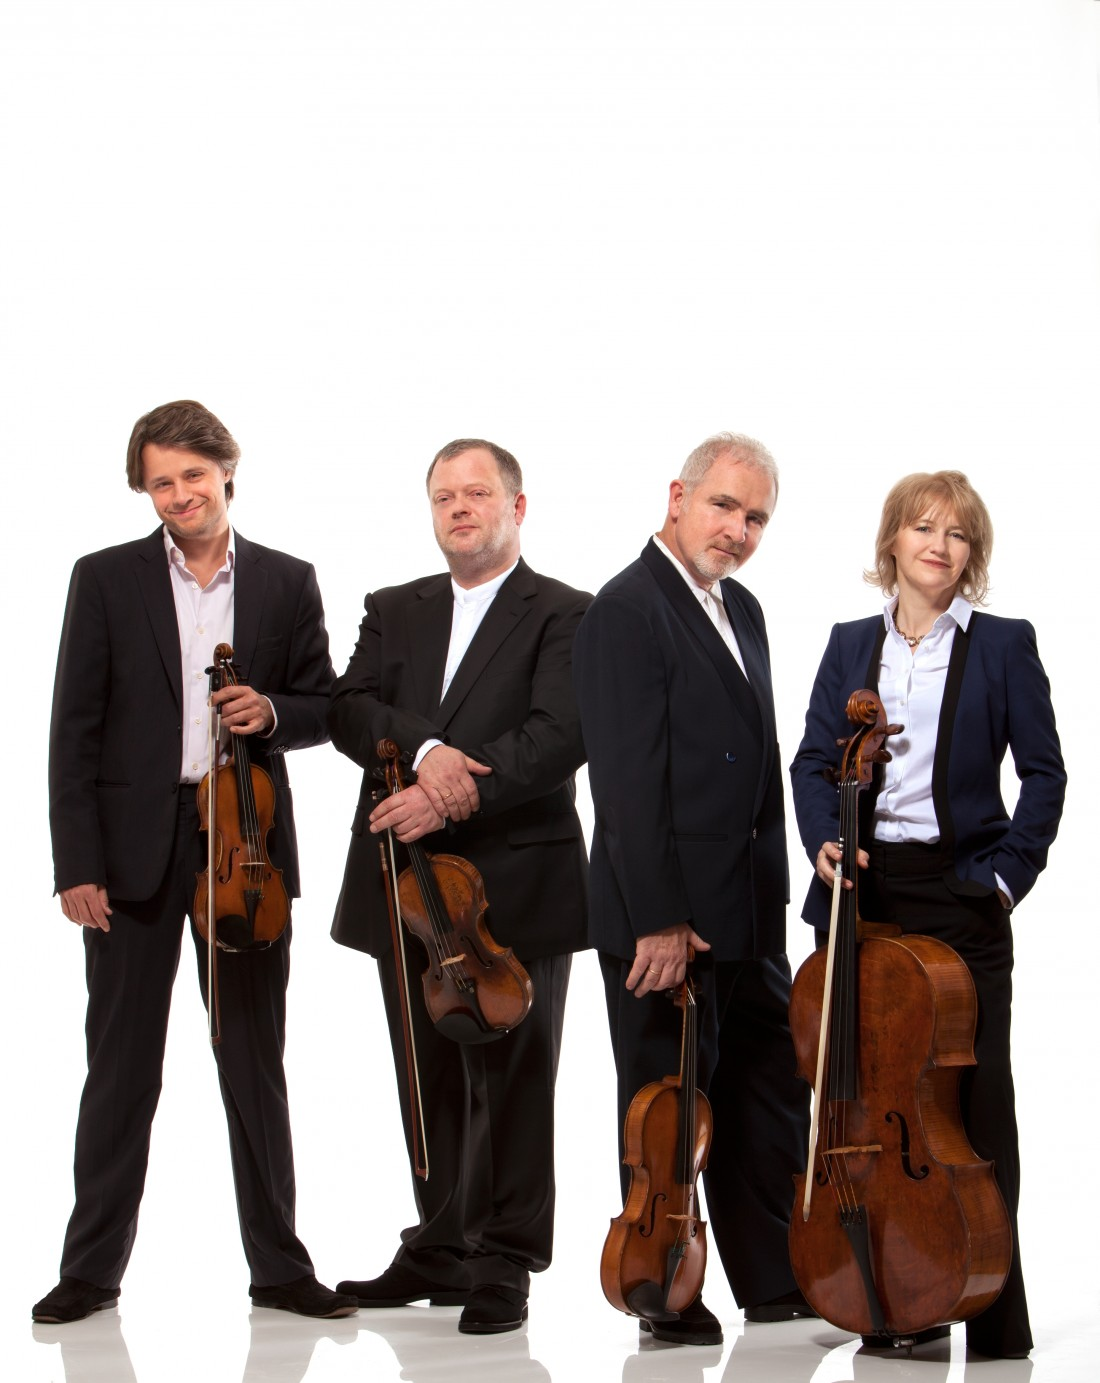 The Brodsky Quartet perform on 19 October at The Great Hall, Lancaster University